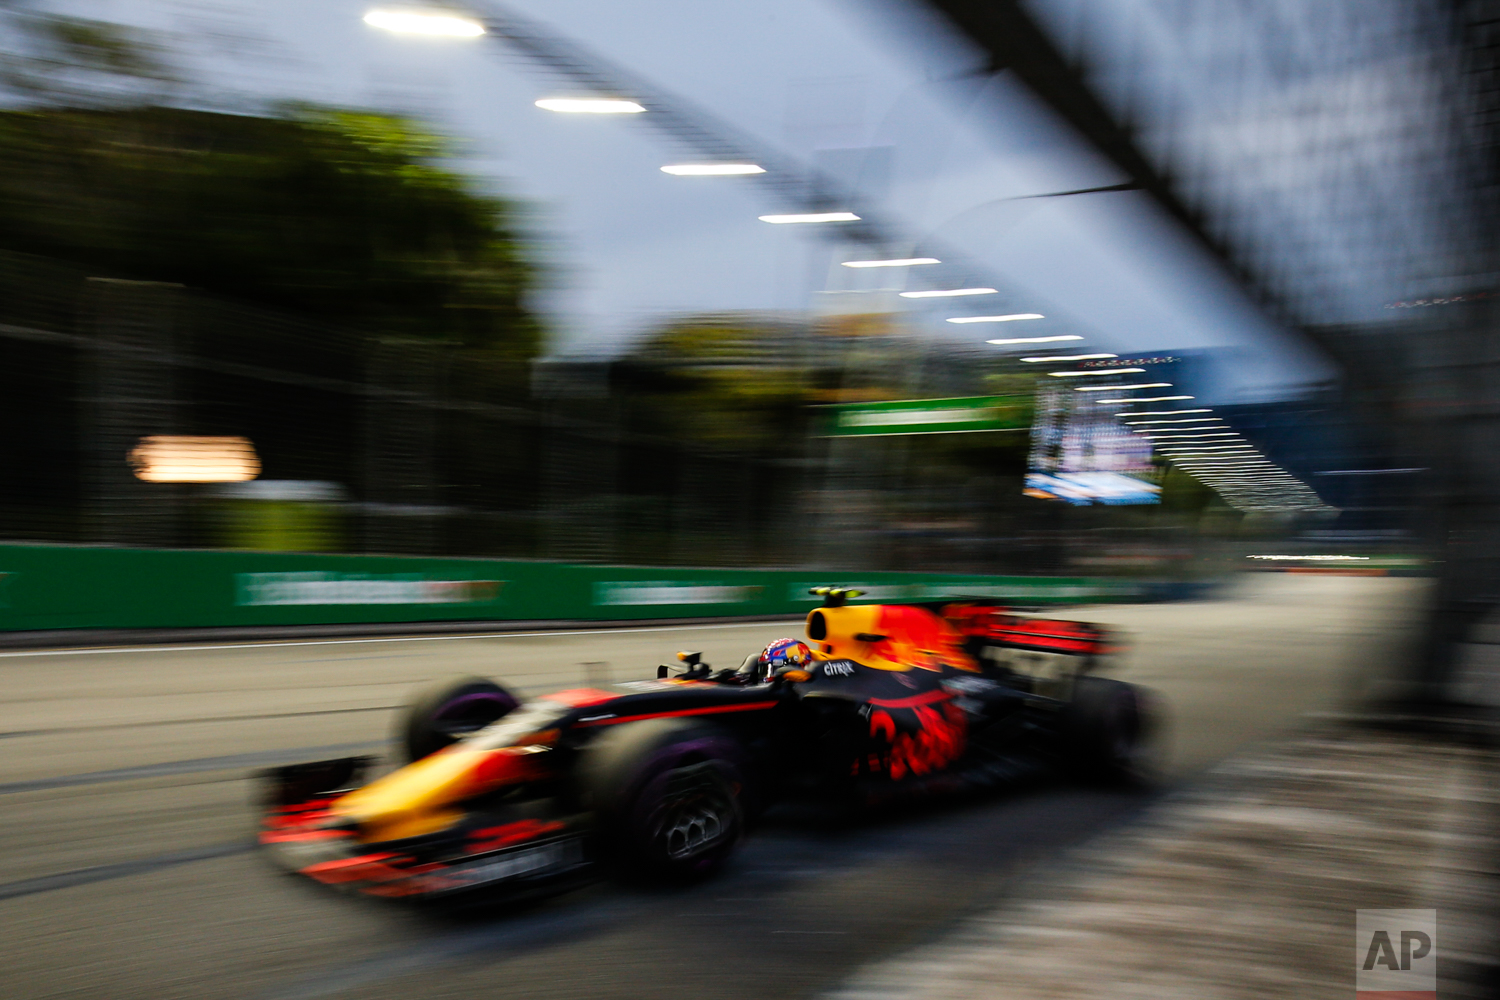 Red Bull driver Max Verstappen of the Netherlands steers his car during the third practice session at the Singapore Formula One Grand Prix on the Marina Bay City Circuit Singapore, Saturday, Sept. 16, 2017. (AP Photo/Yong Teck Lim)